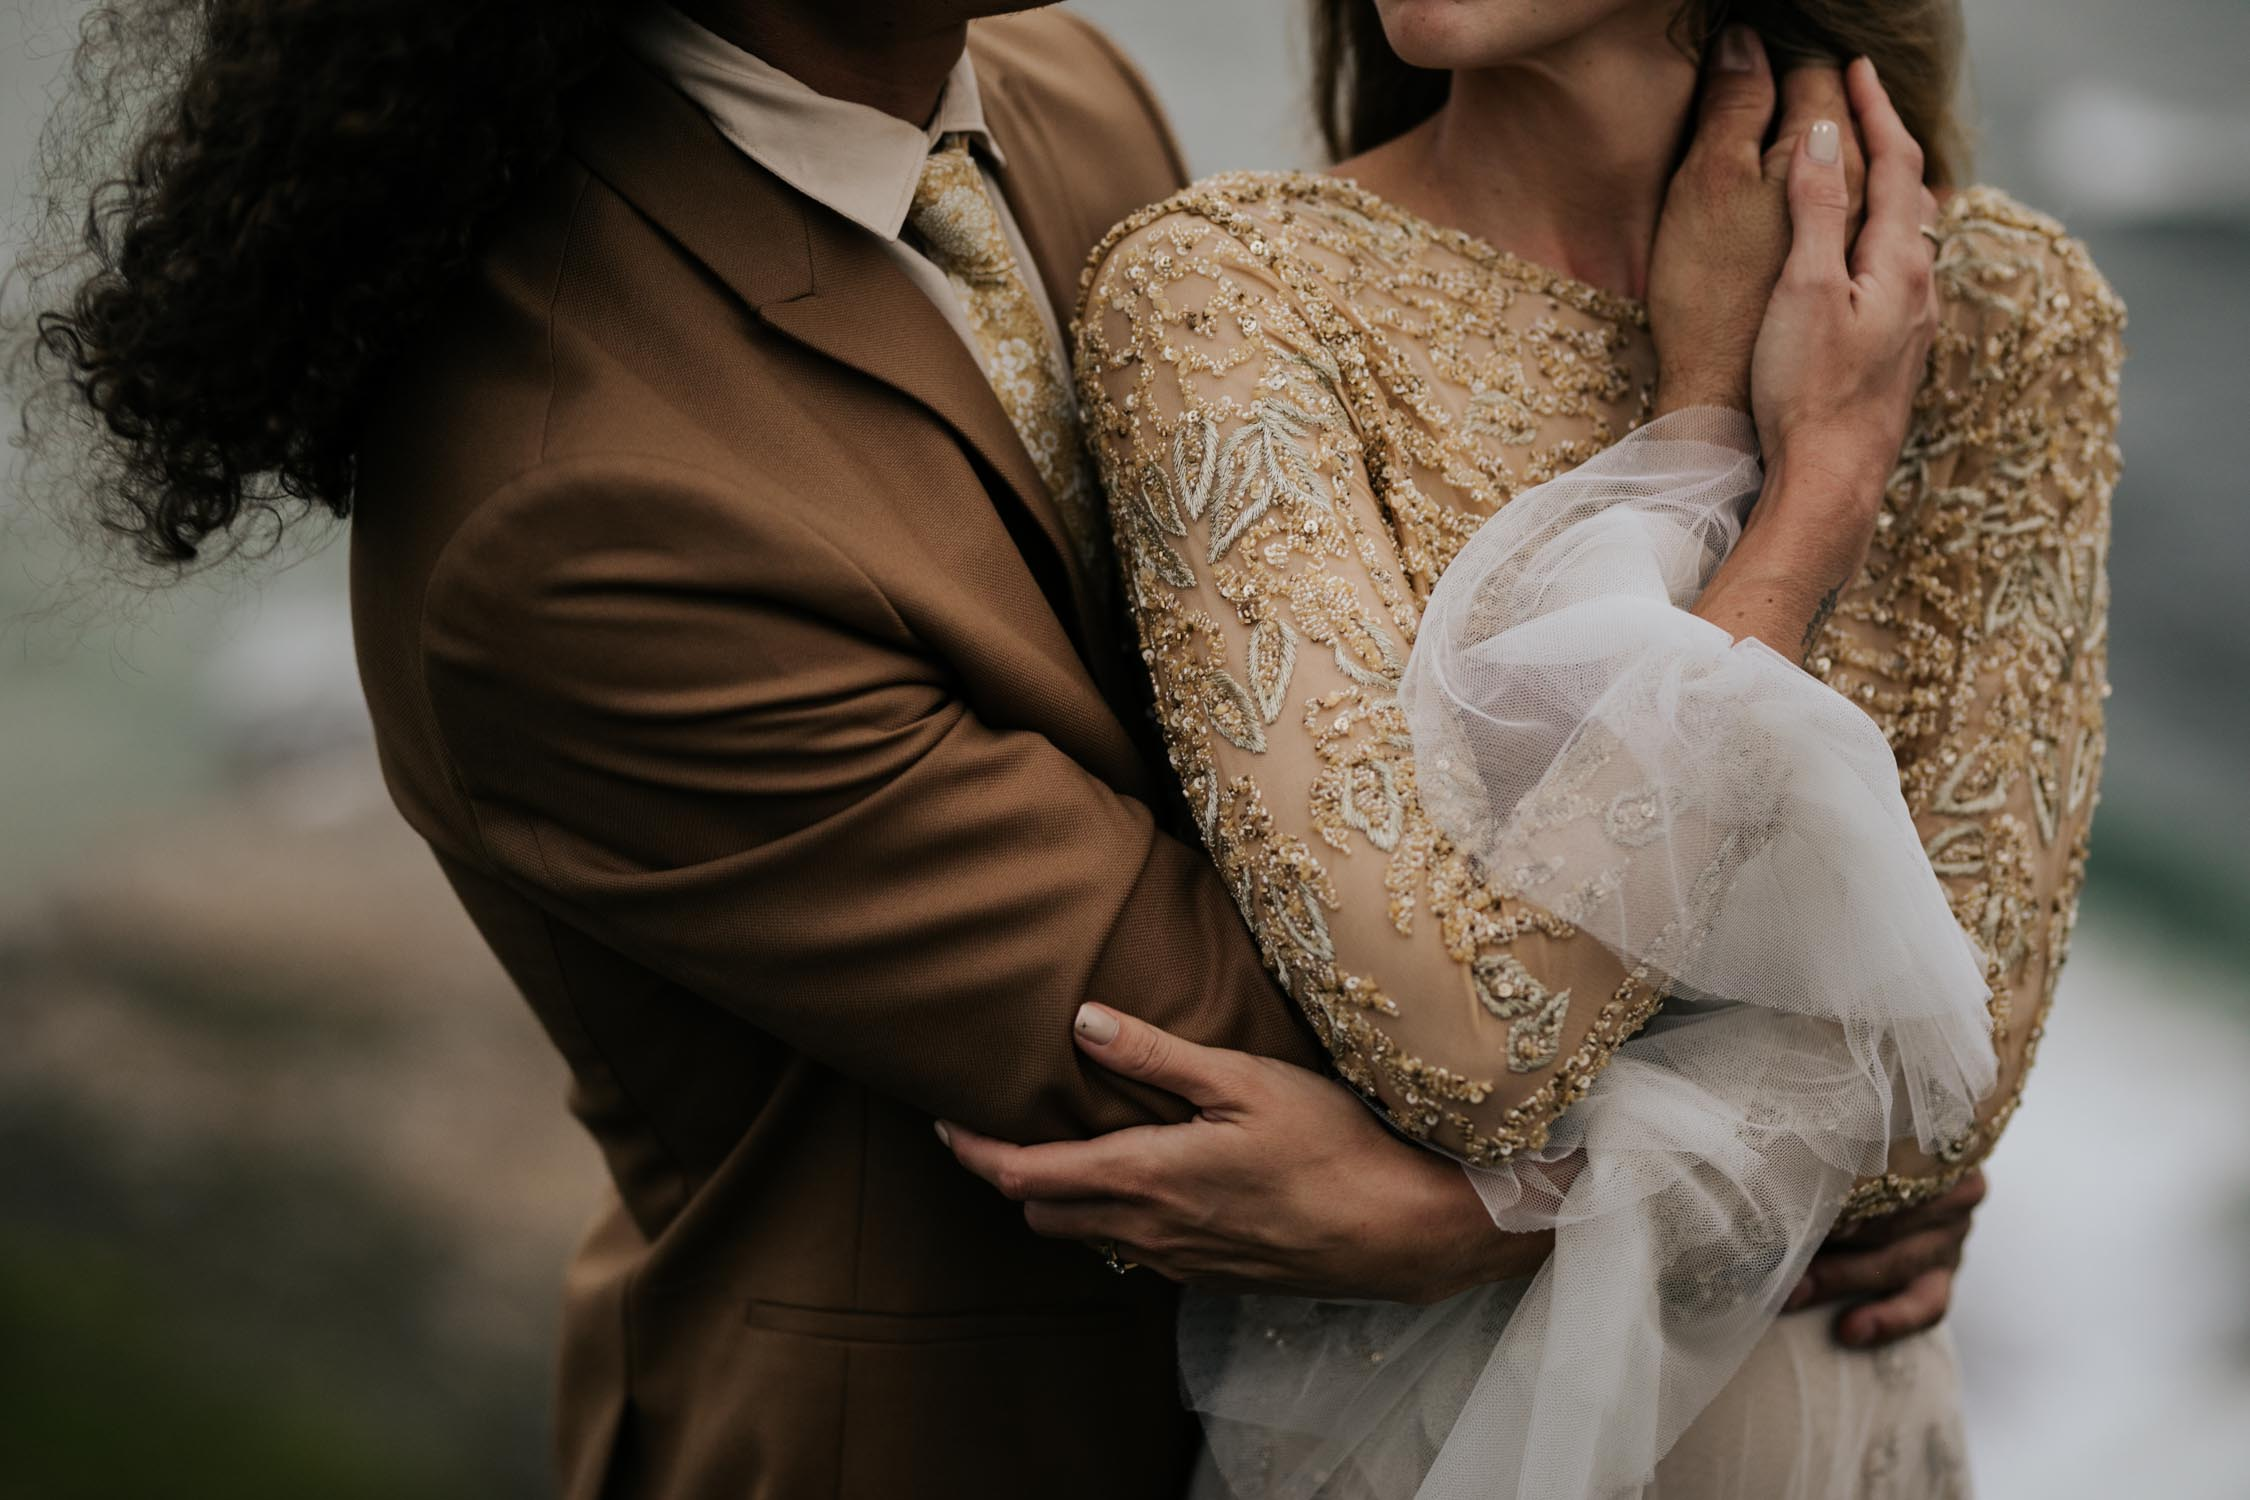 Adventure Wedding Photo Session by Vancouver Photographer of groom wearing brown suite, beige shirt, and felt hat walks with bride wearing gypsy wedding dress with flared long sleeves, sheer skirt and gold detailed top on edge of cliff